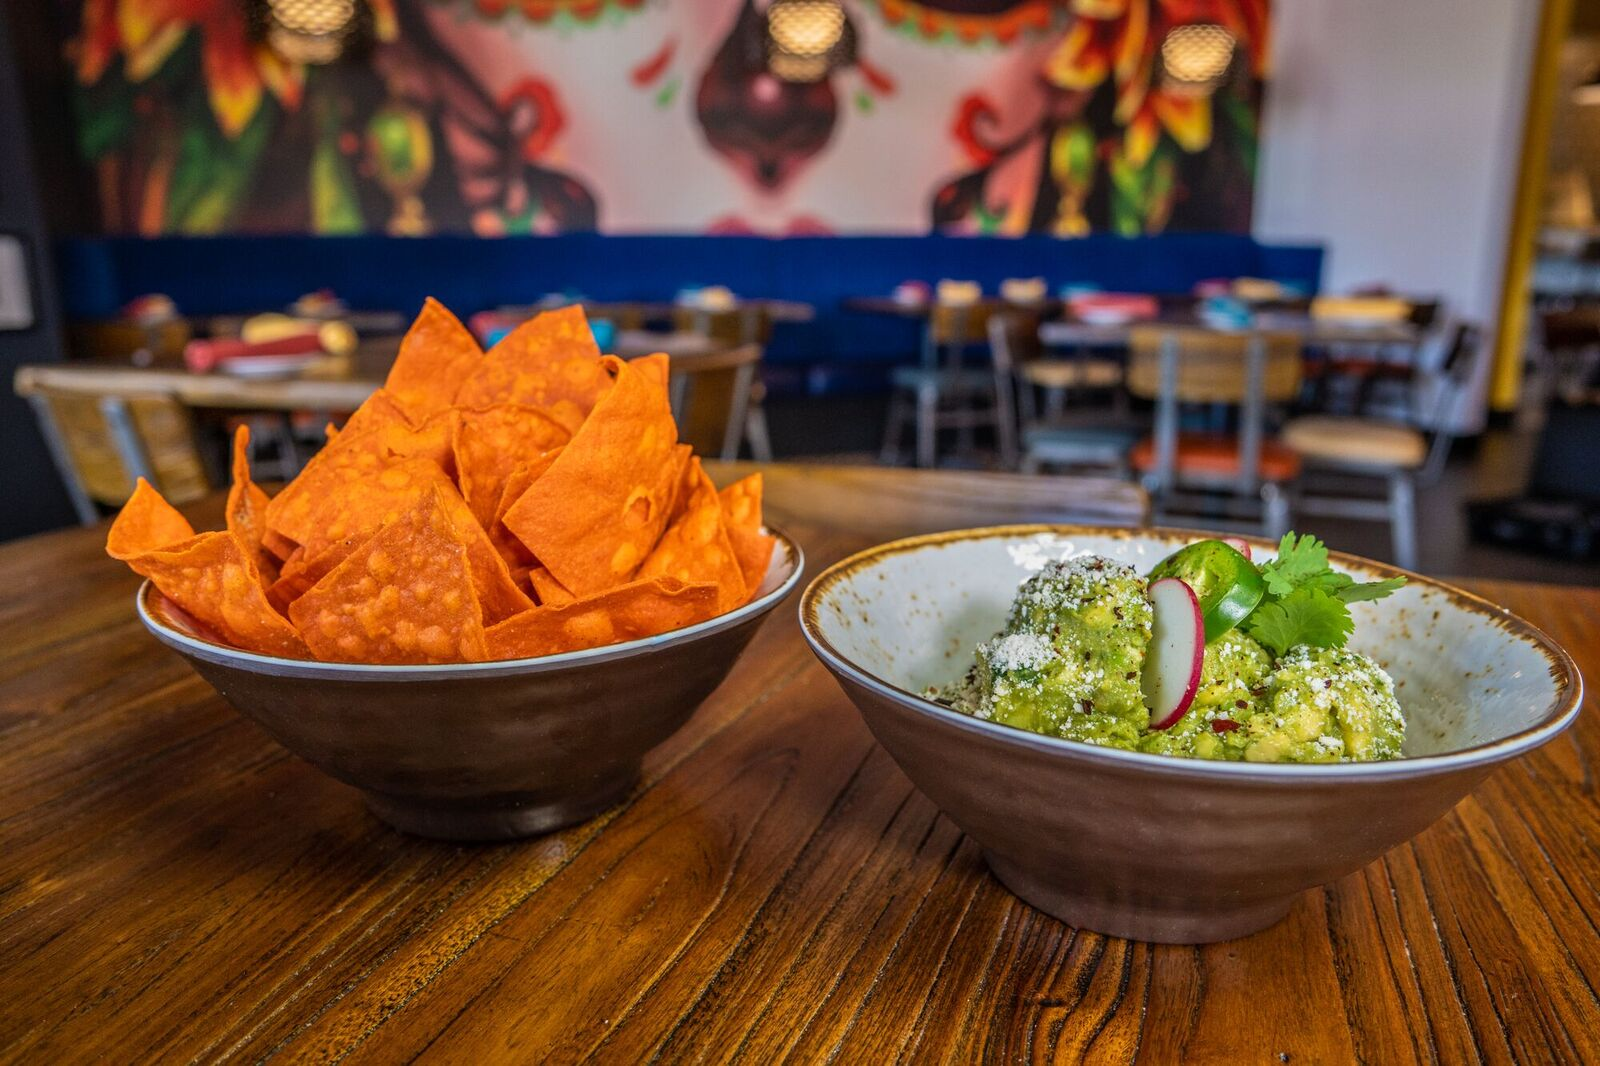 Bowl of guacamole served with a side of chips